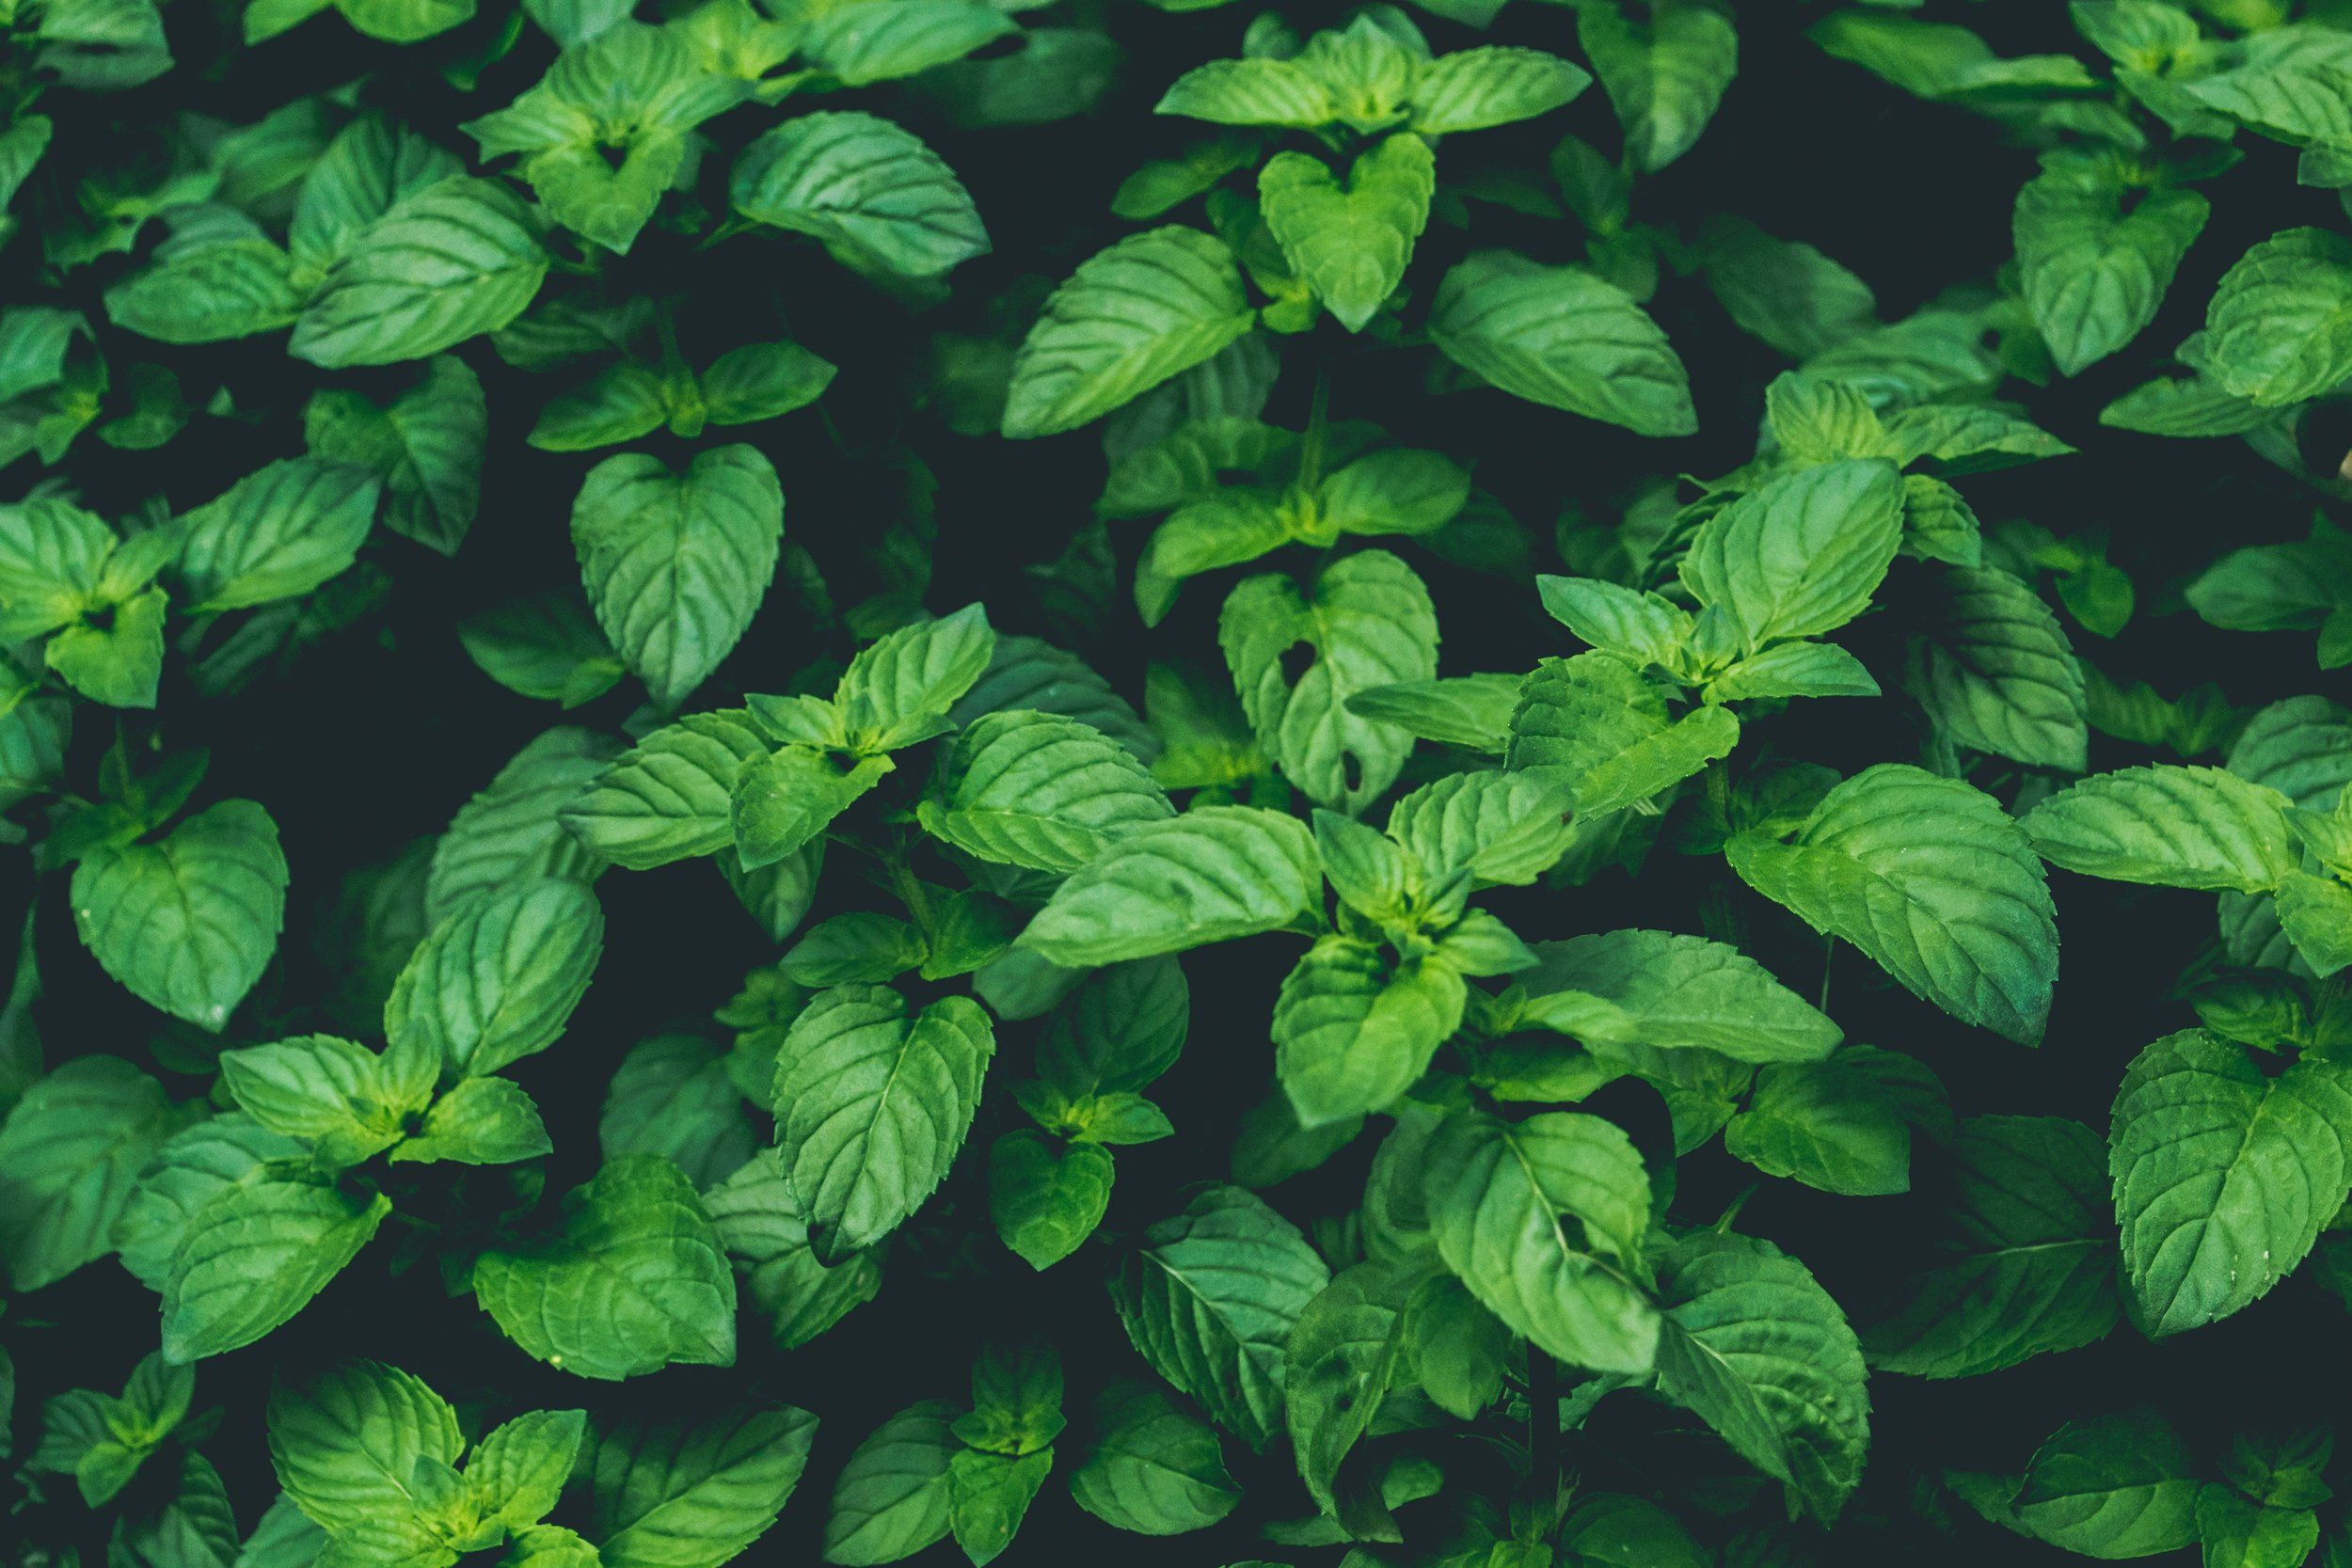 Mint acts as a menthol to help decongest. -